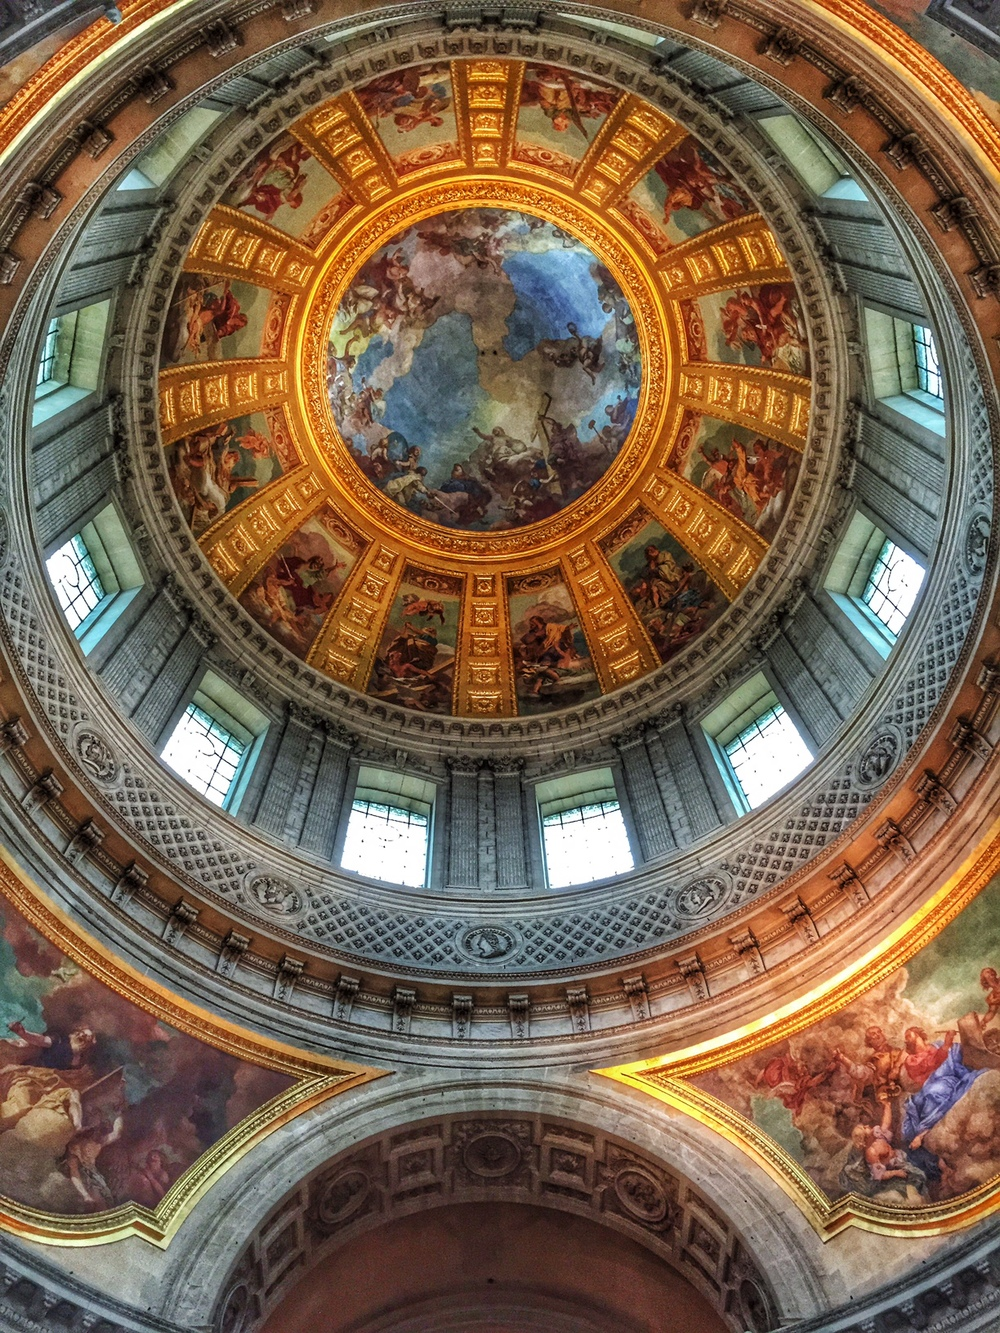 the dome inside Les Invalides (Napoleon's tomb)